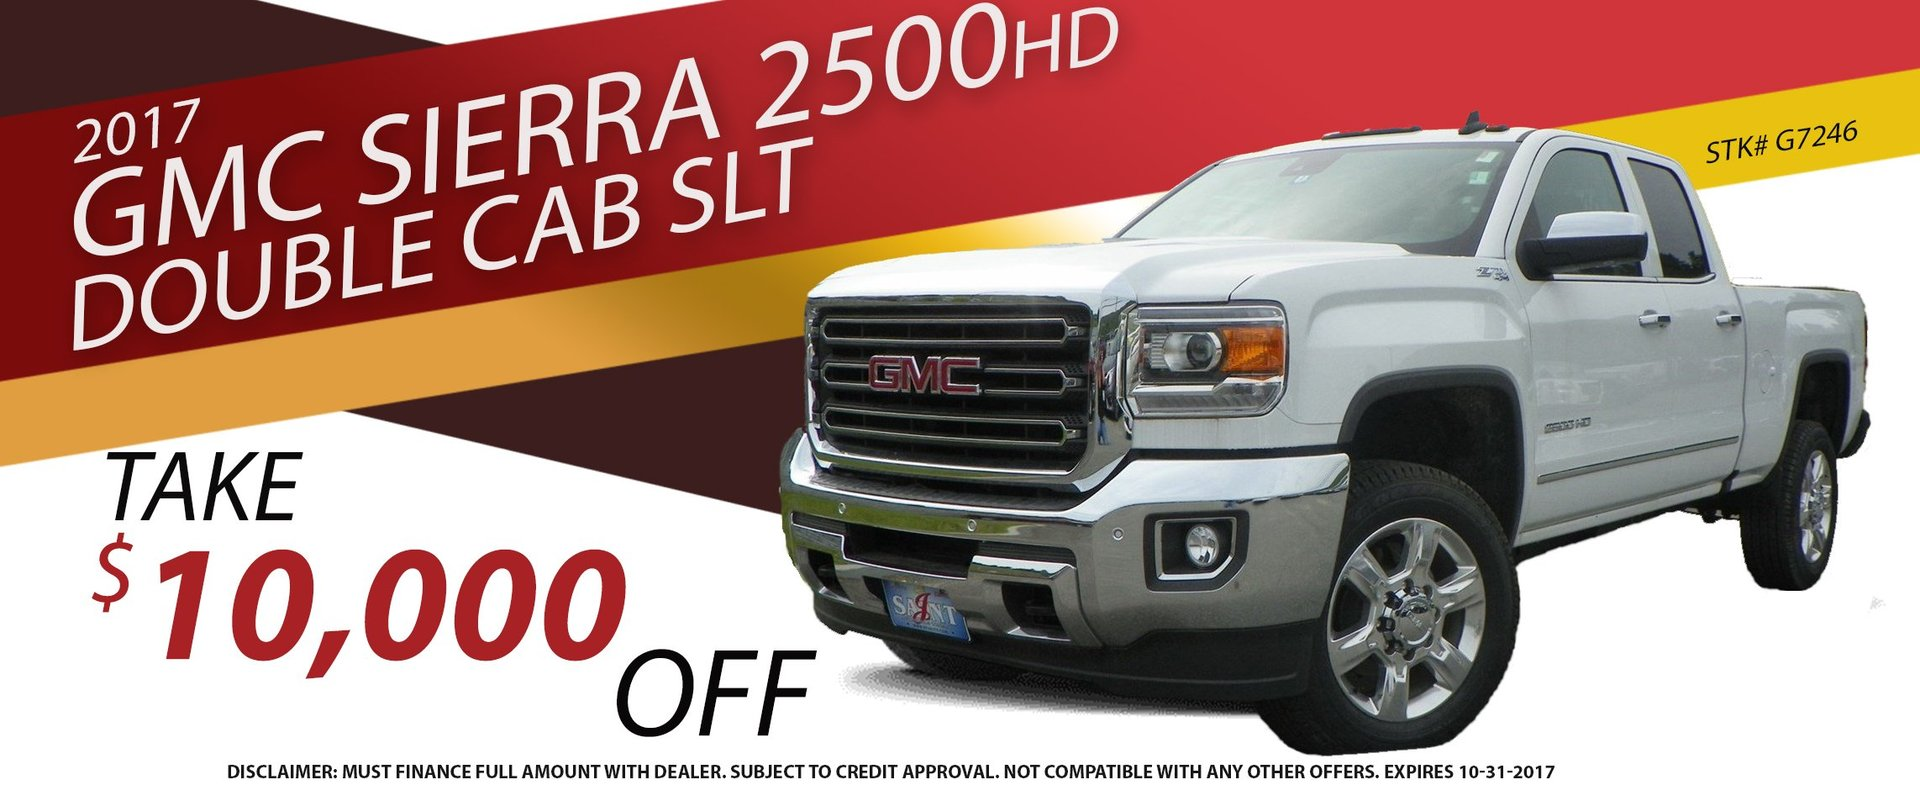 Take $10,000 OFF an all new 2017 GMC Sierra 2500HD Double Cab SLT